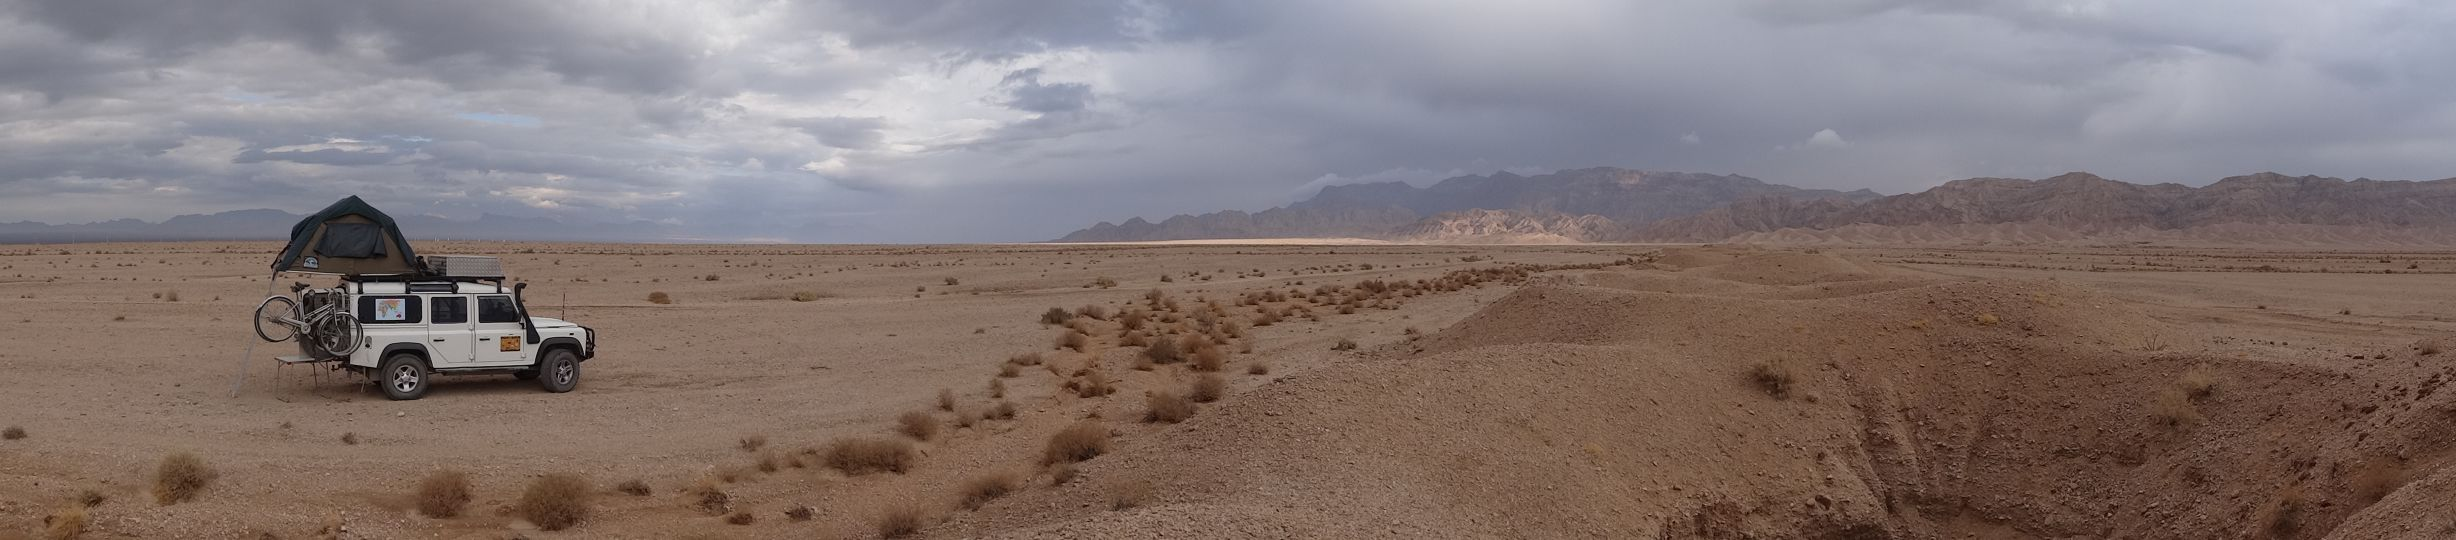 another beautiful campsite, next to the qanats in the desert